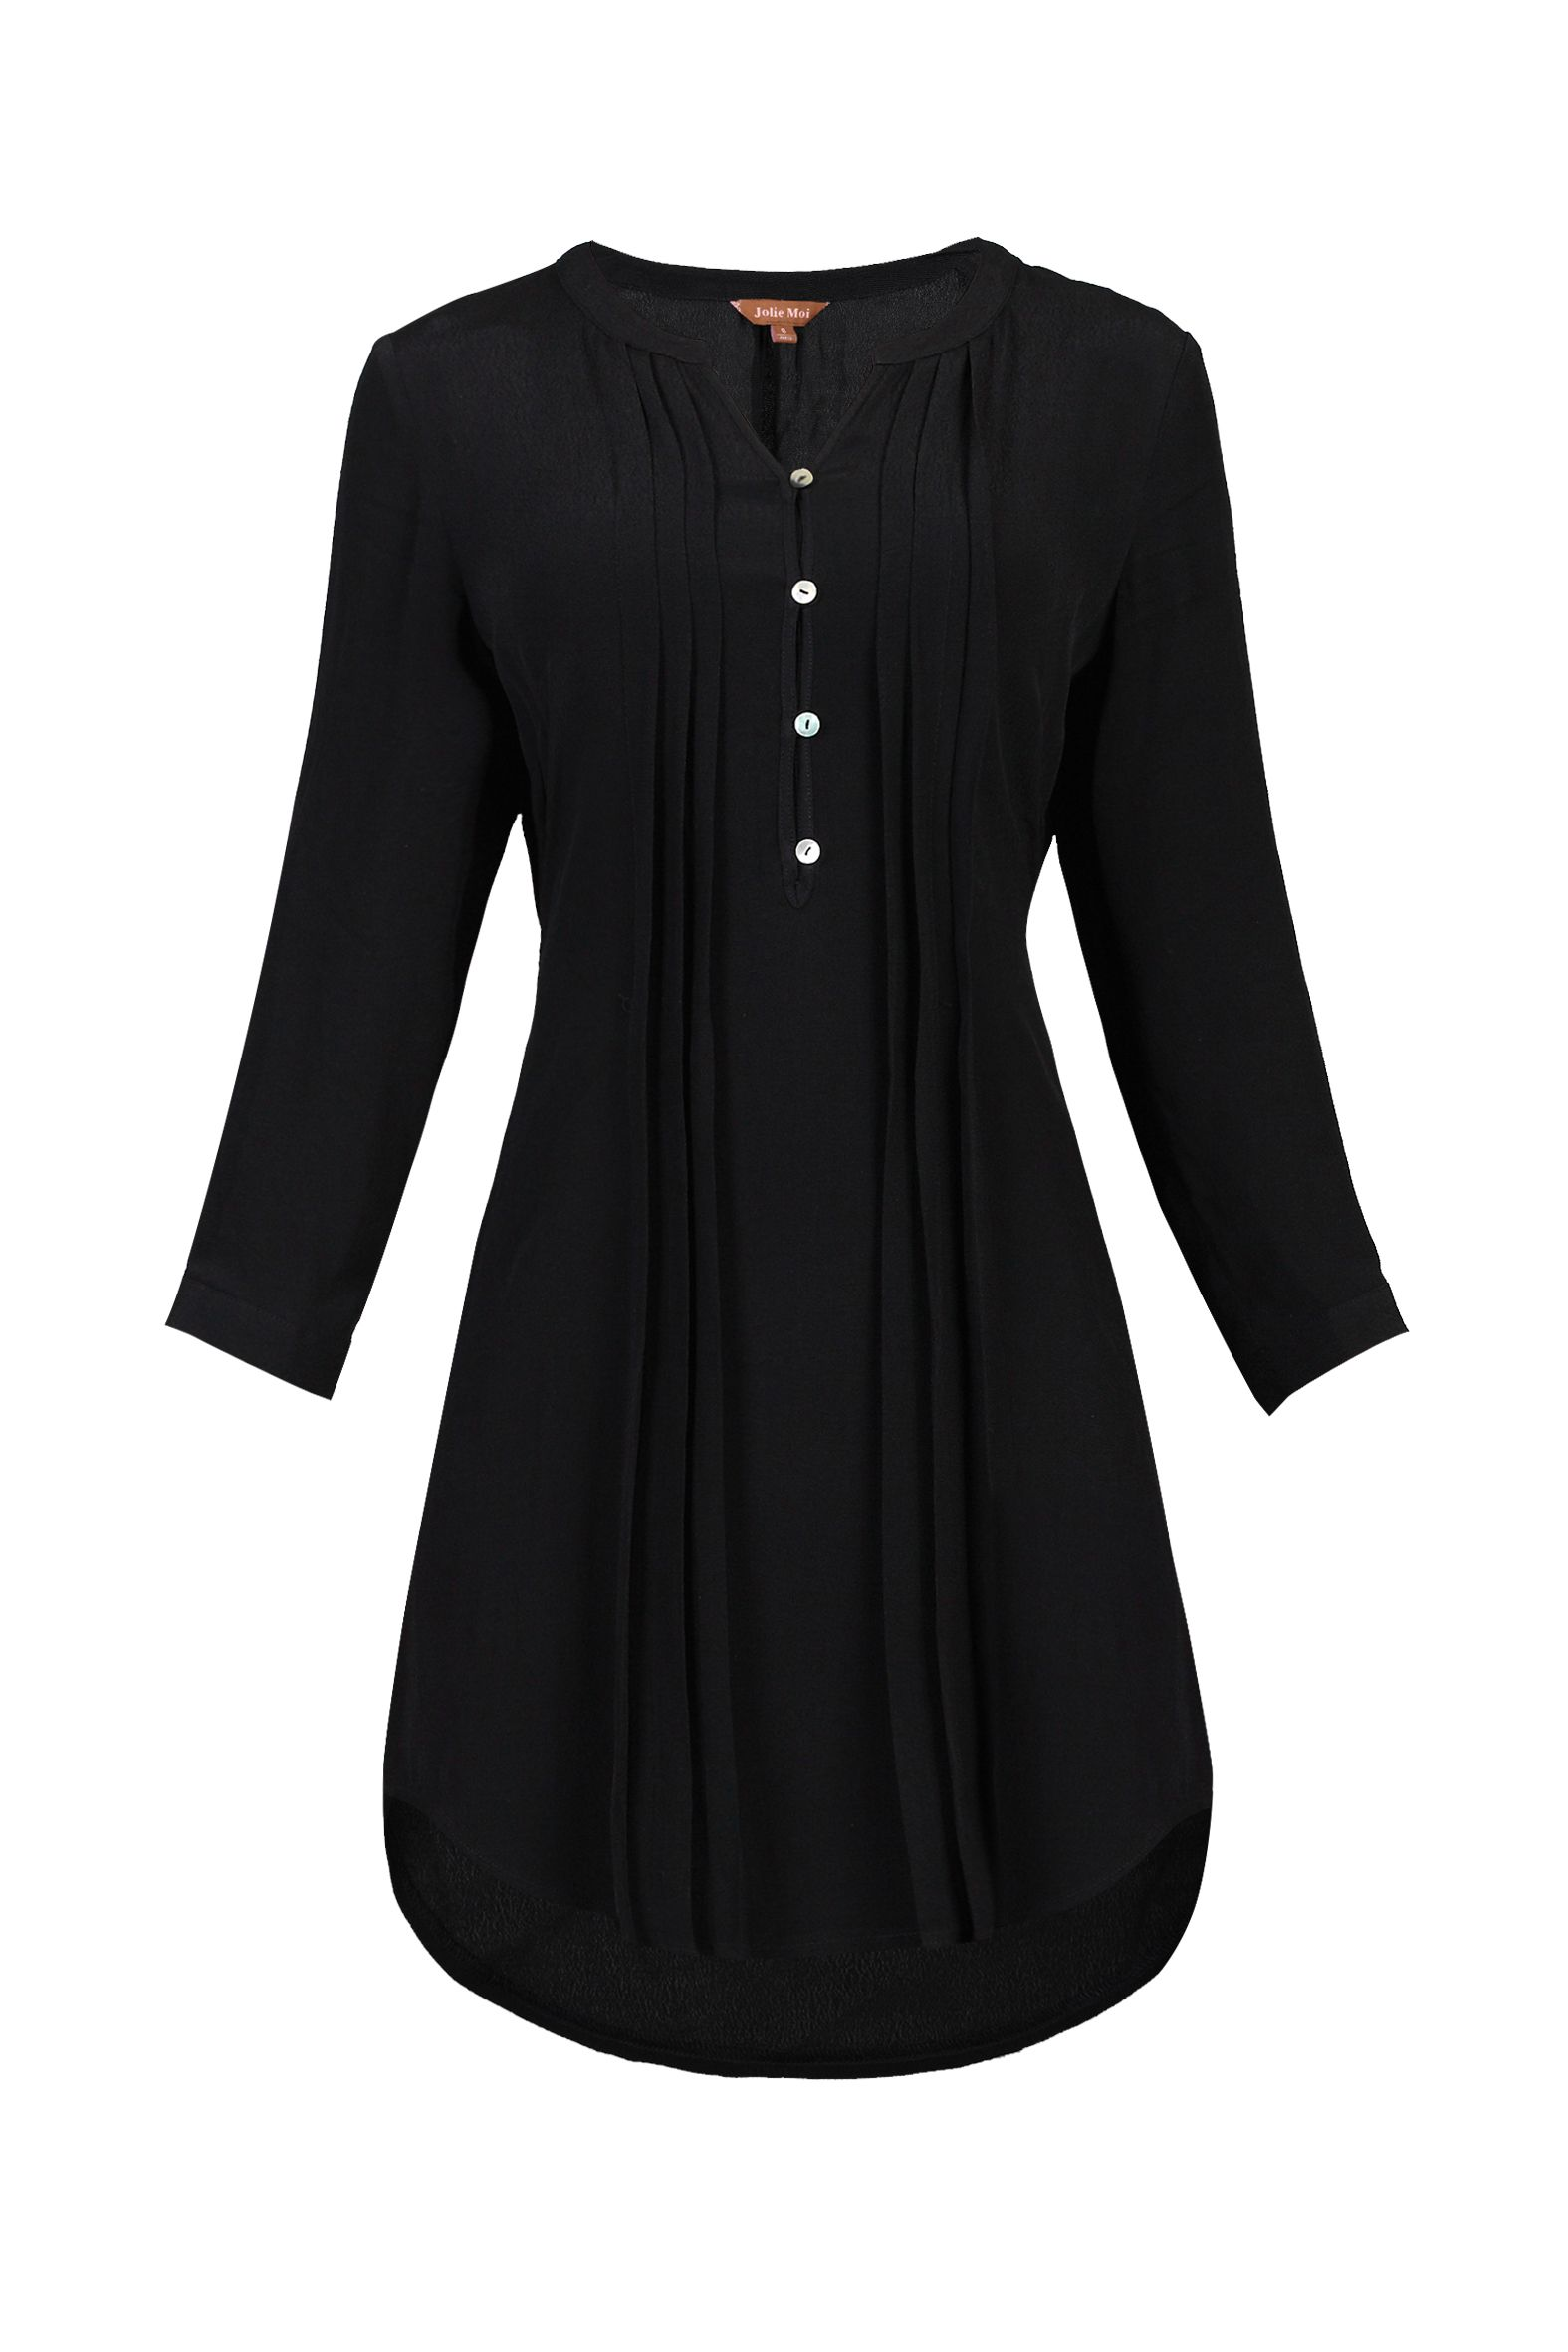 Jolie Moi Button Front Pleated Tunic, Black